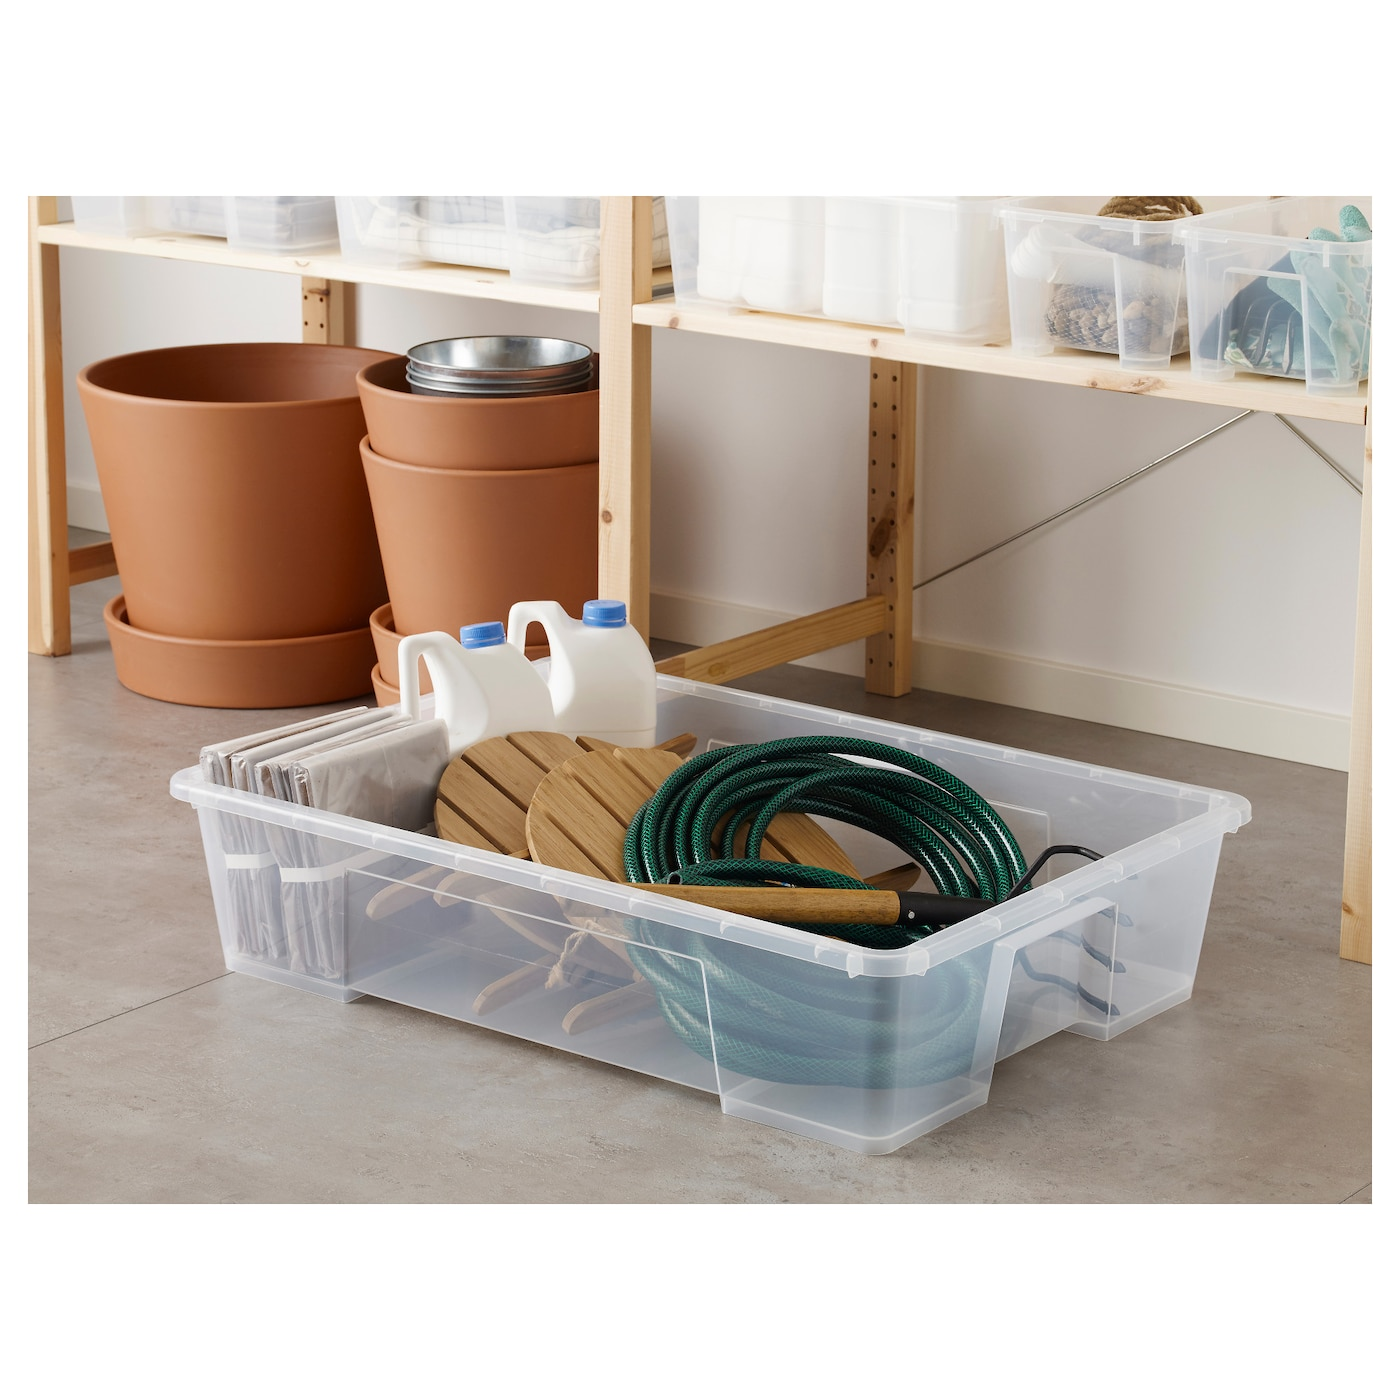 IKEA SAMLA box Can also be used as extra storage space under the bed.